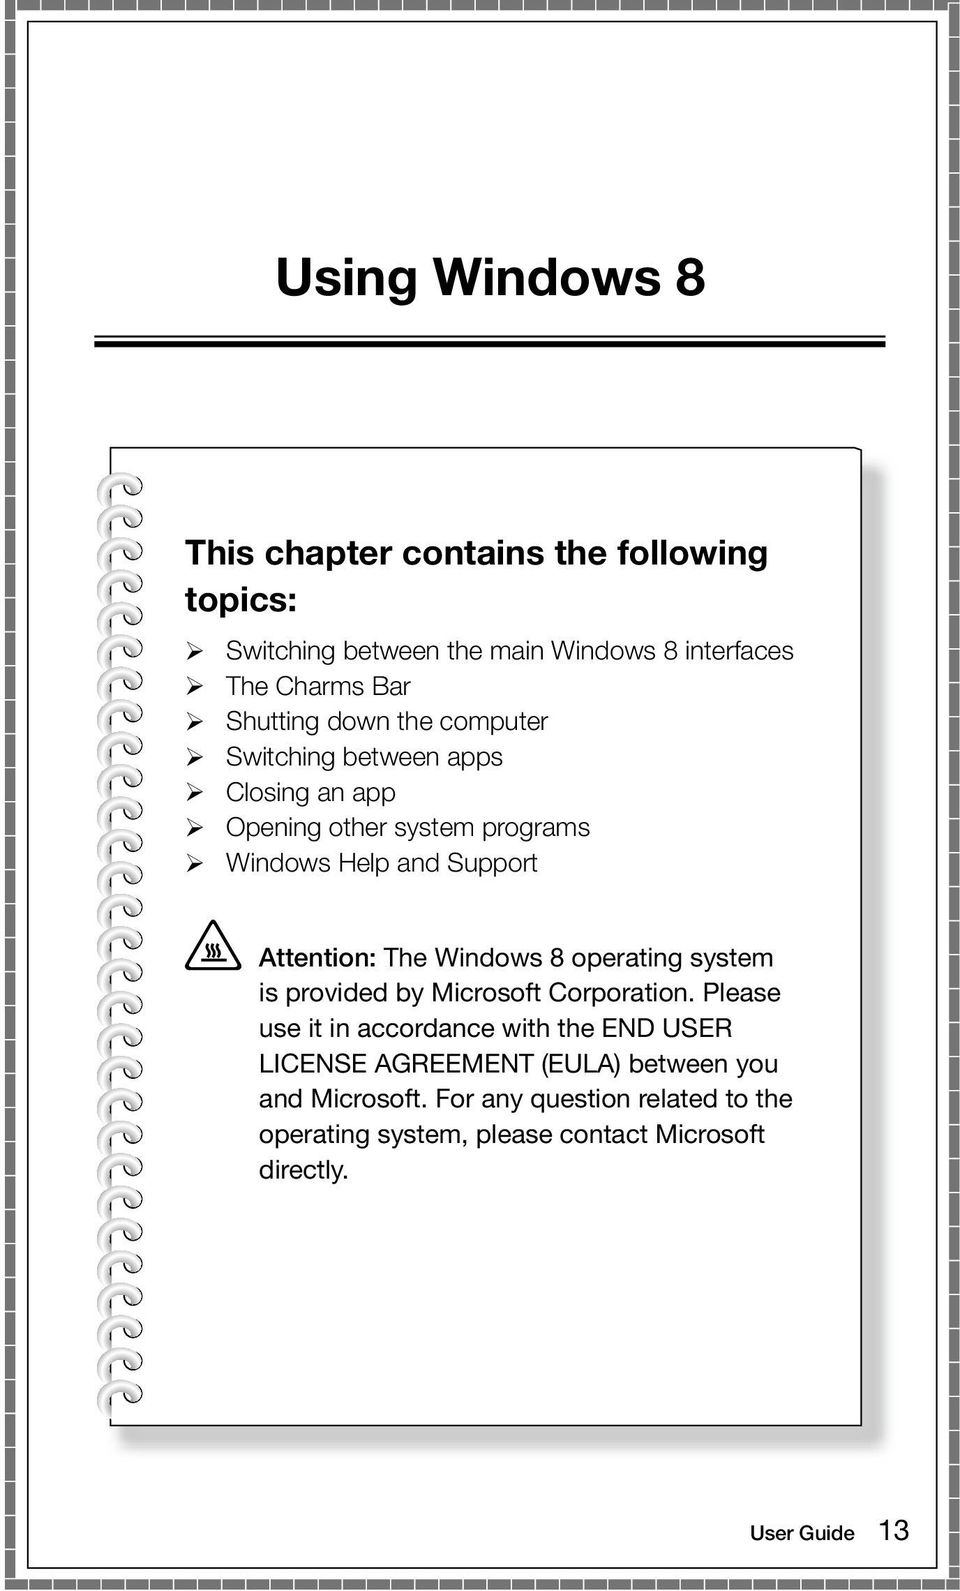 Attention: The Windows 8 operating system is provided by Microsoft Corporation.